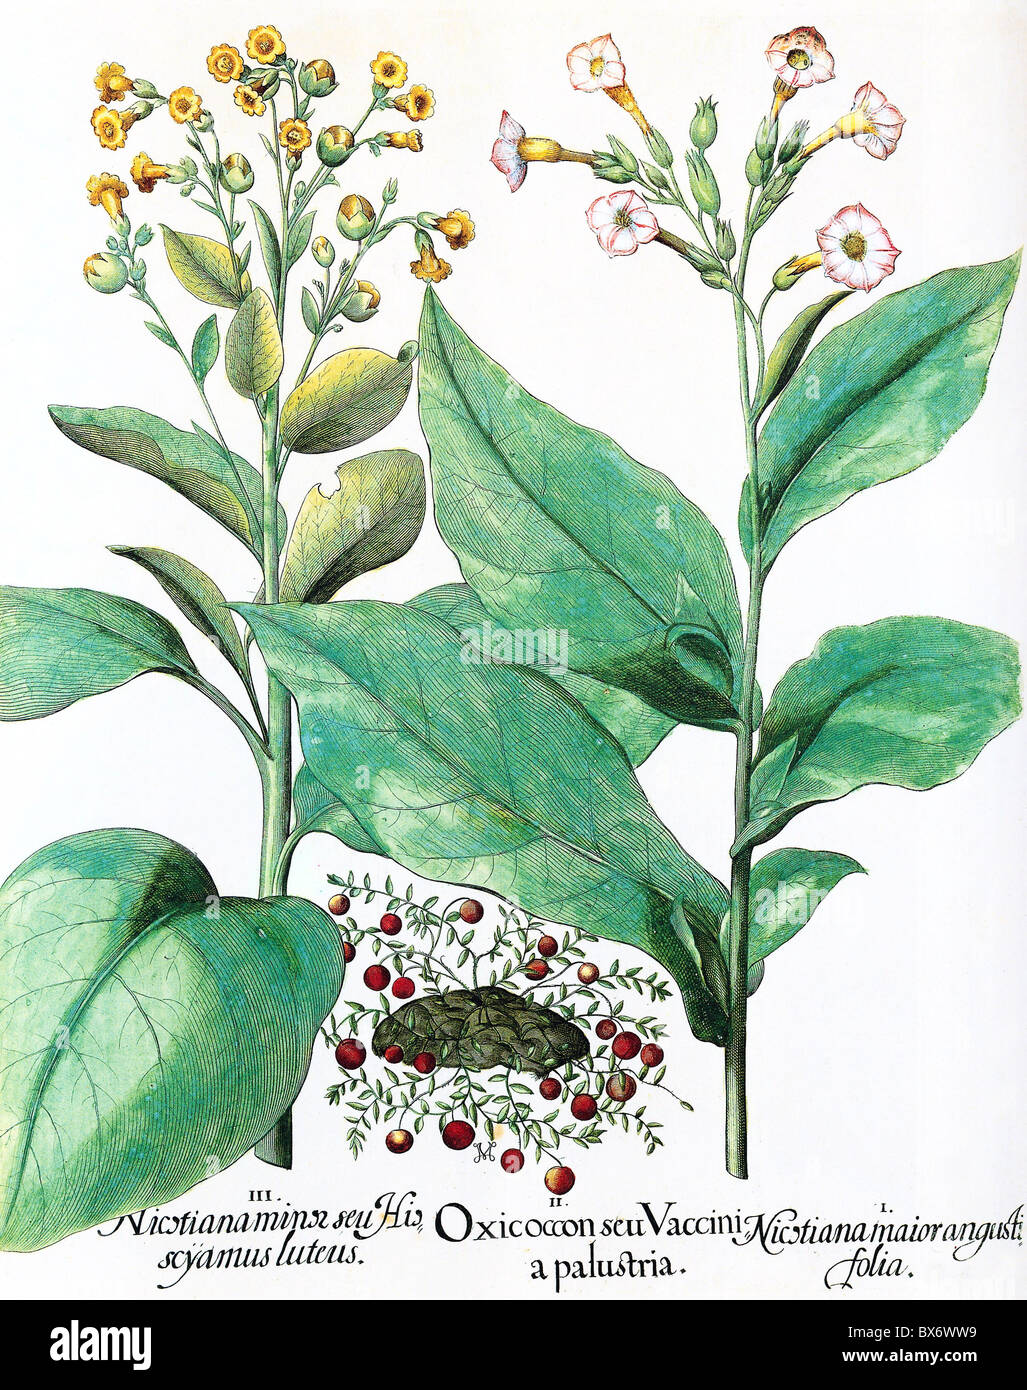 Nicotiana Tabacum Images: Botany, Tobacco, Cranberry (Vaccinium Ocycoccos) Between